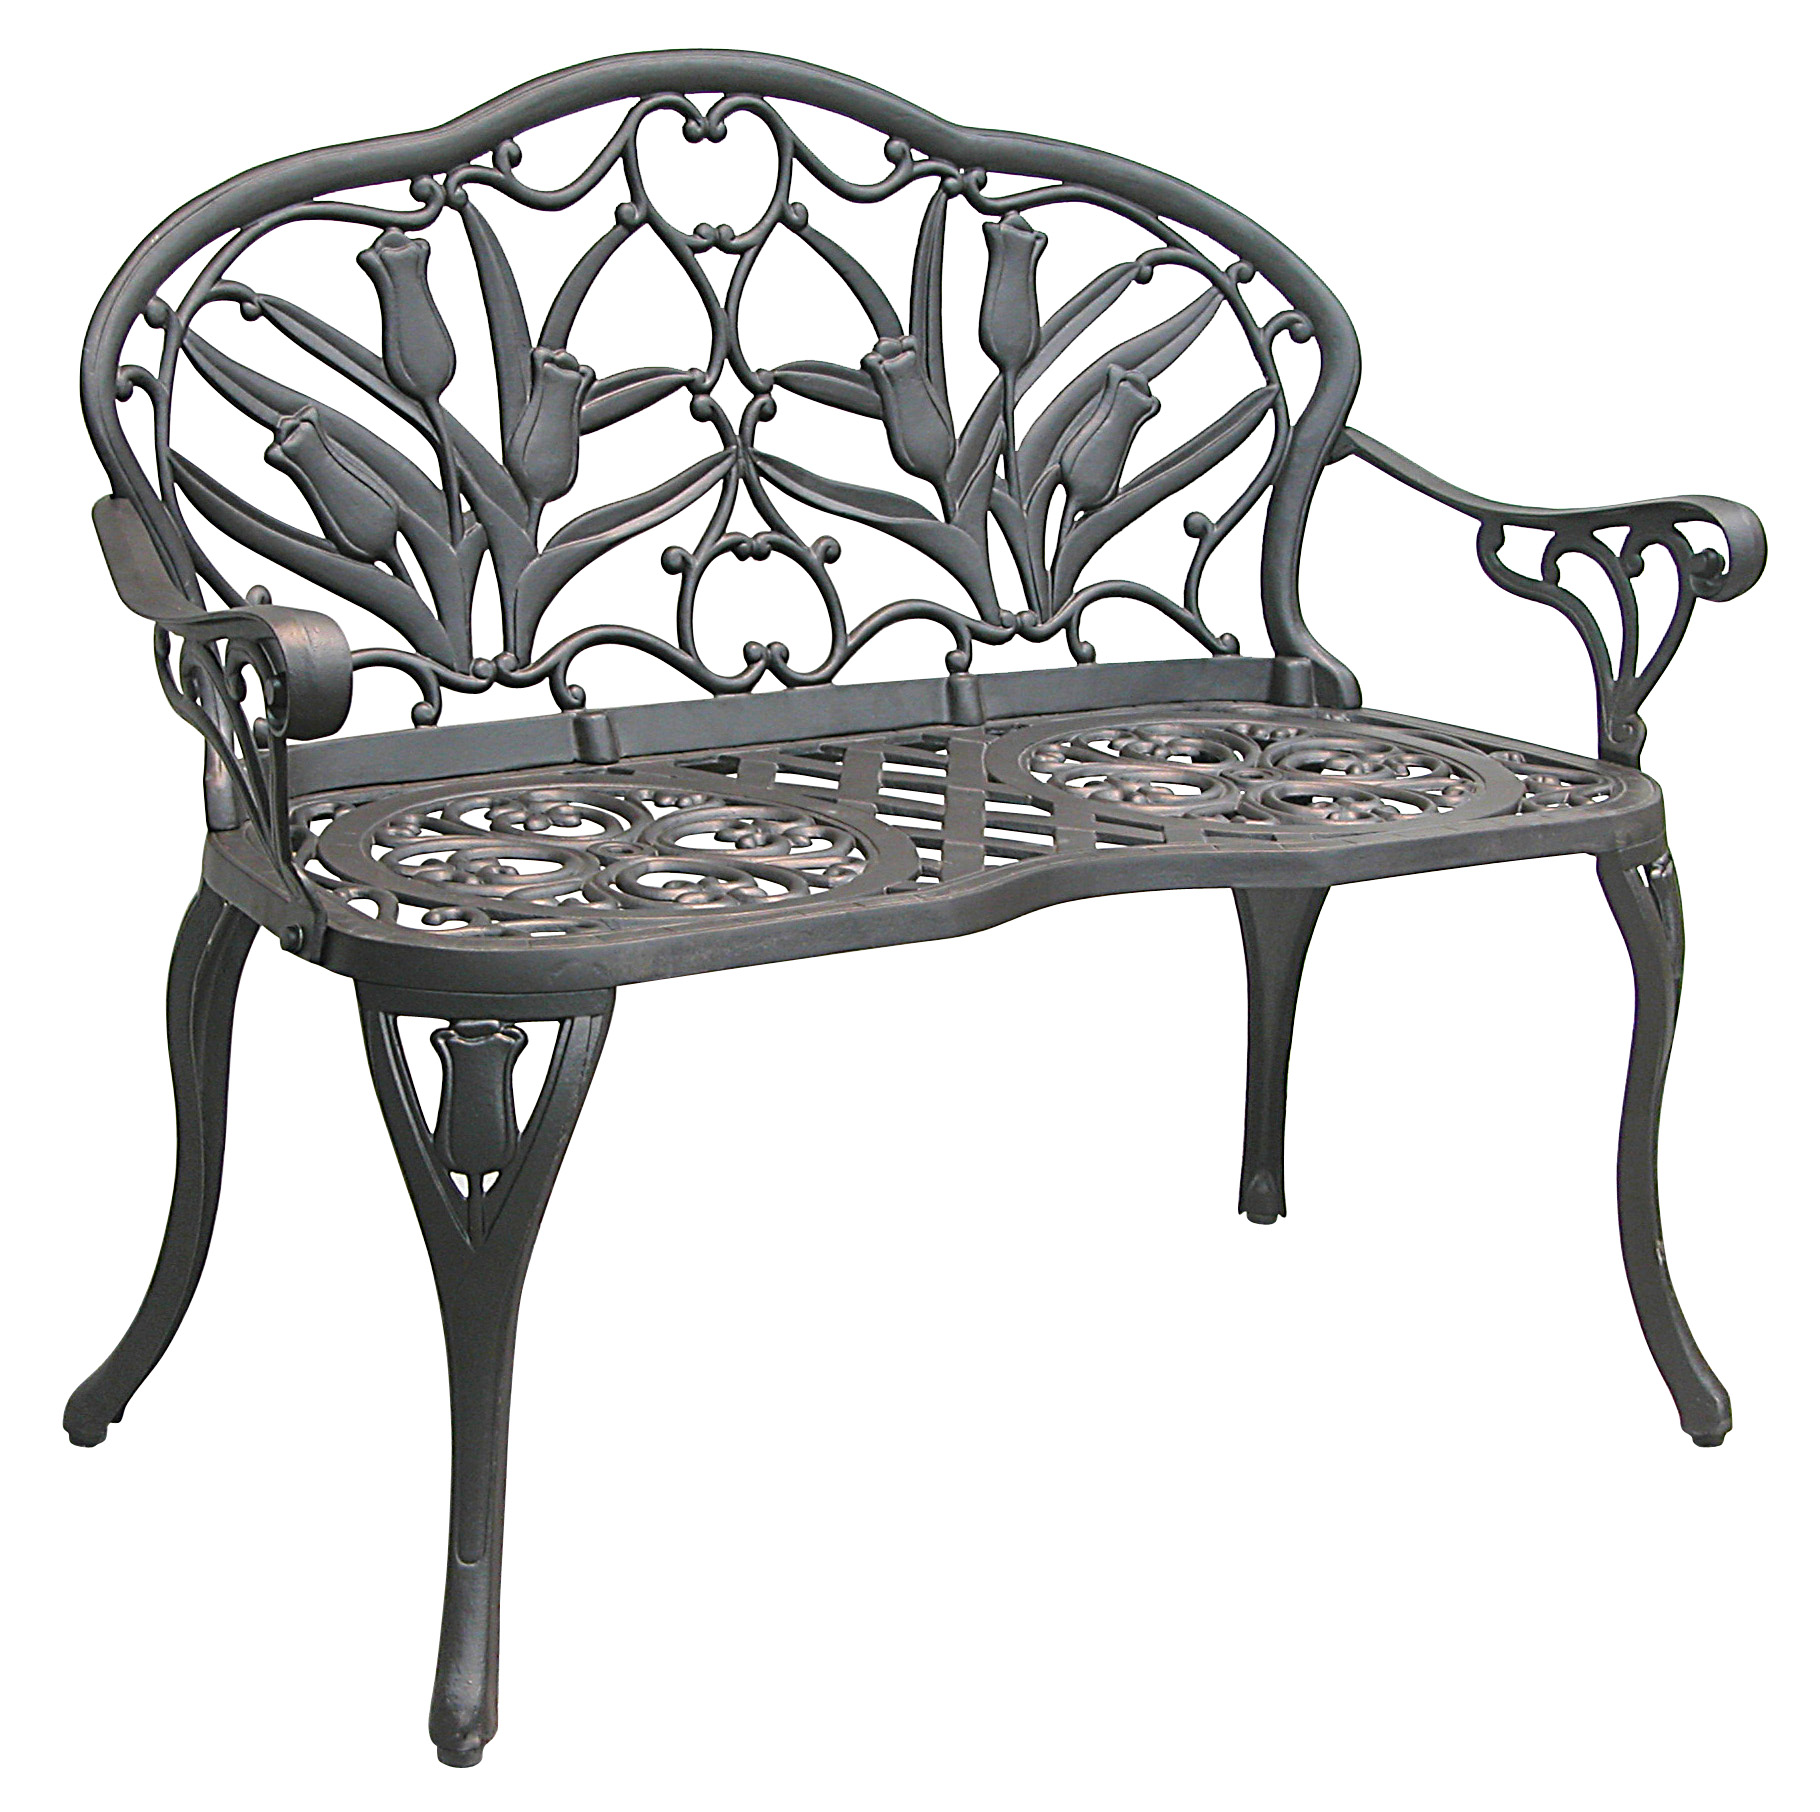 Patio furniture bench cast aluminum iron loveseat tulip for Outdoor furniture bench